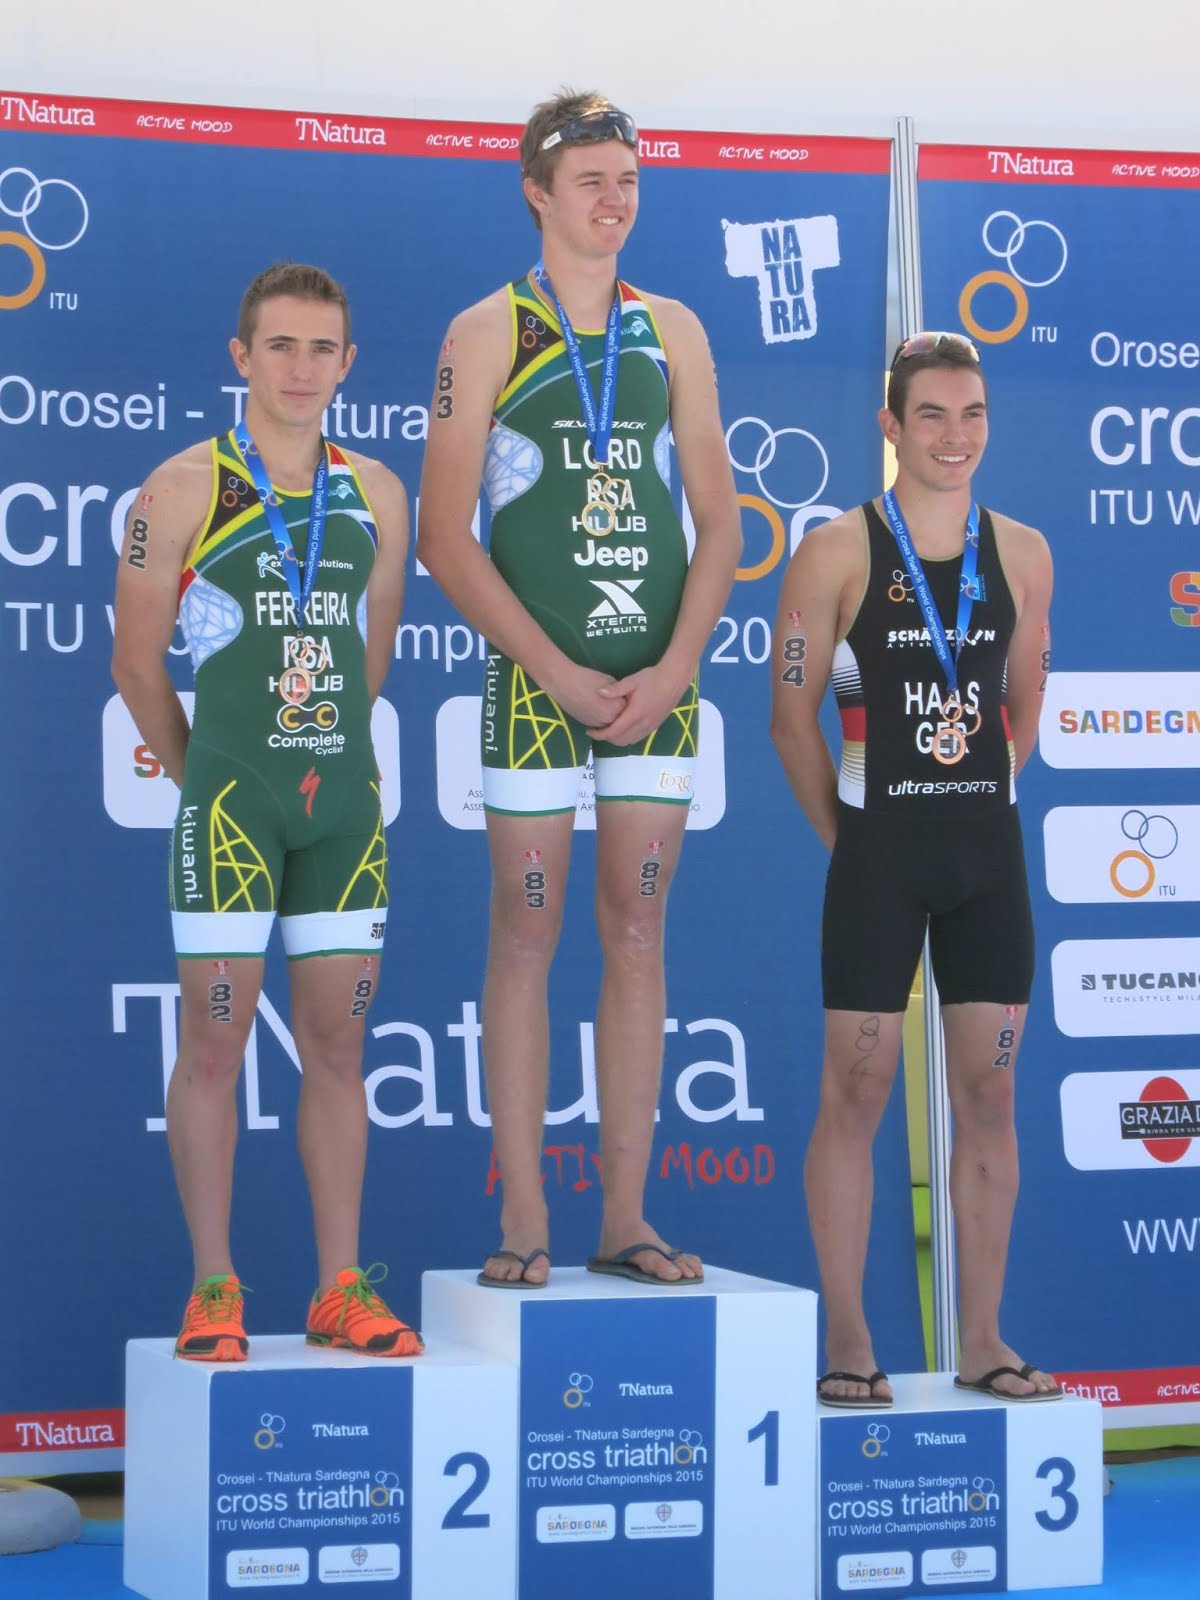 2015 Cross Triathlon Junior World Championships